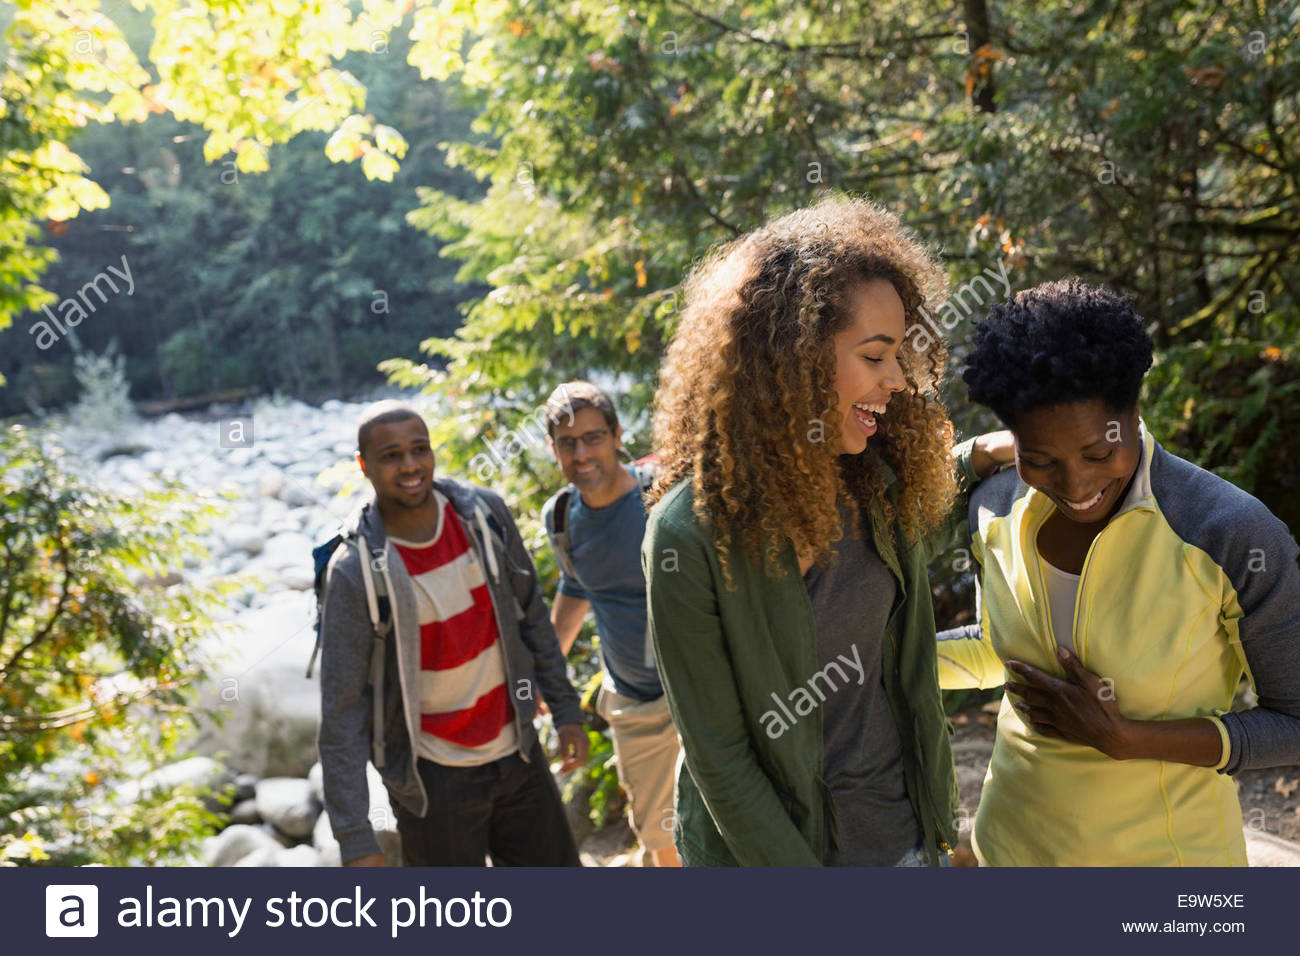 Friends laughing in sunny woods - Stock Image